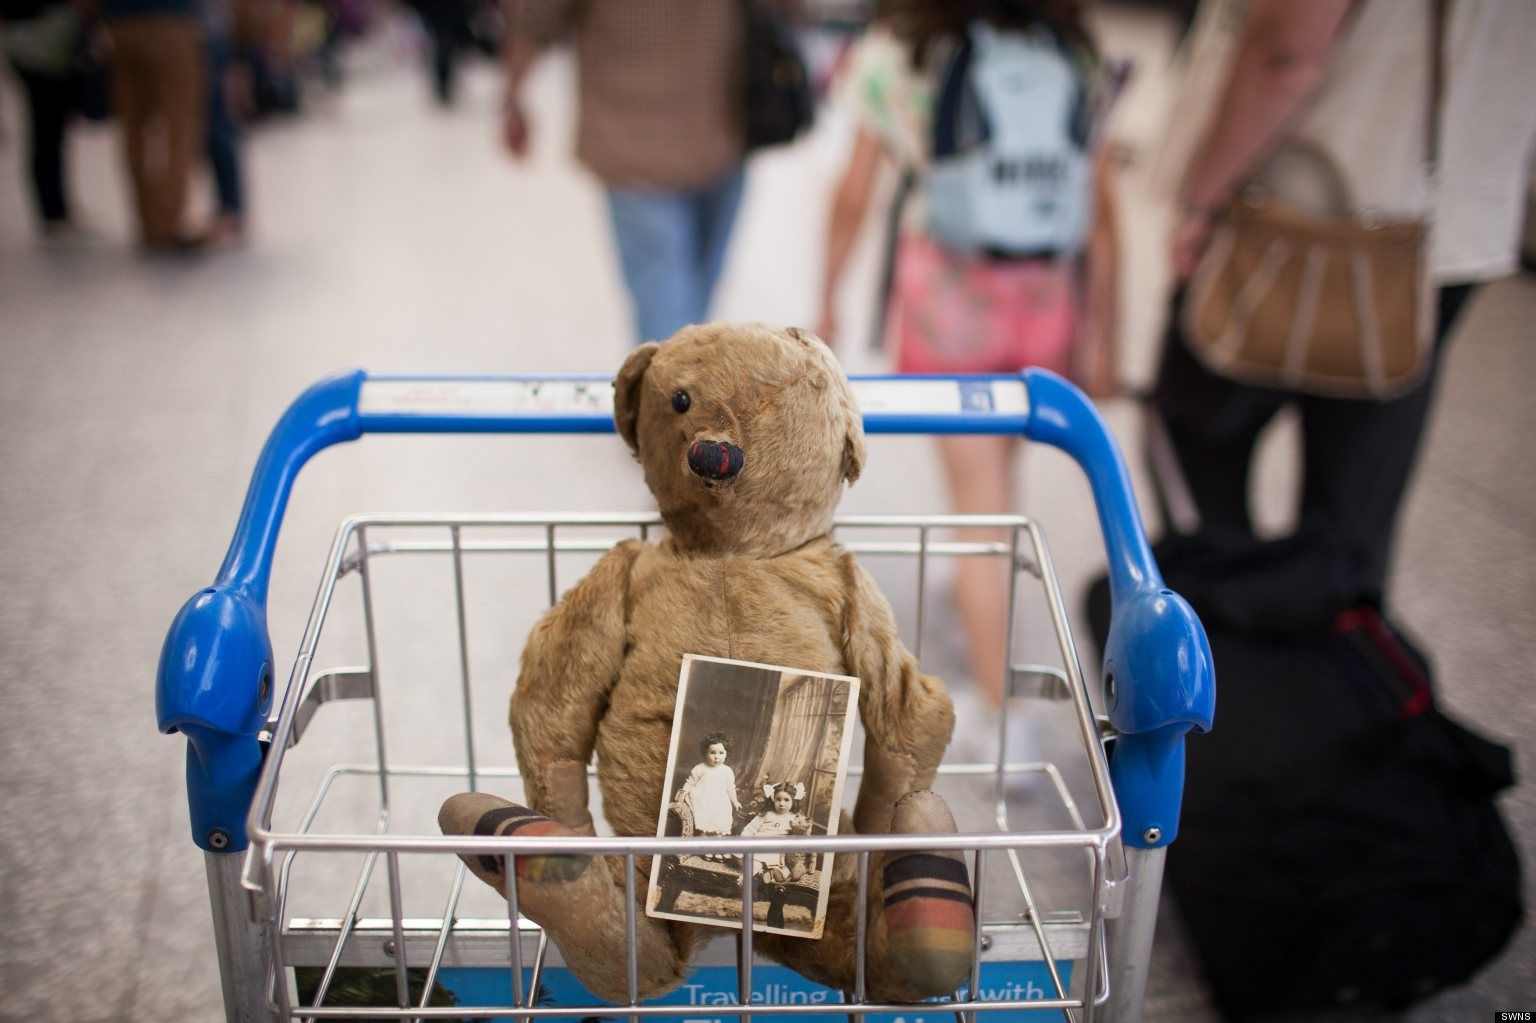 Do you know this bear help us reunite a muchloved 100